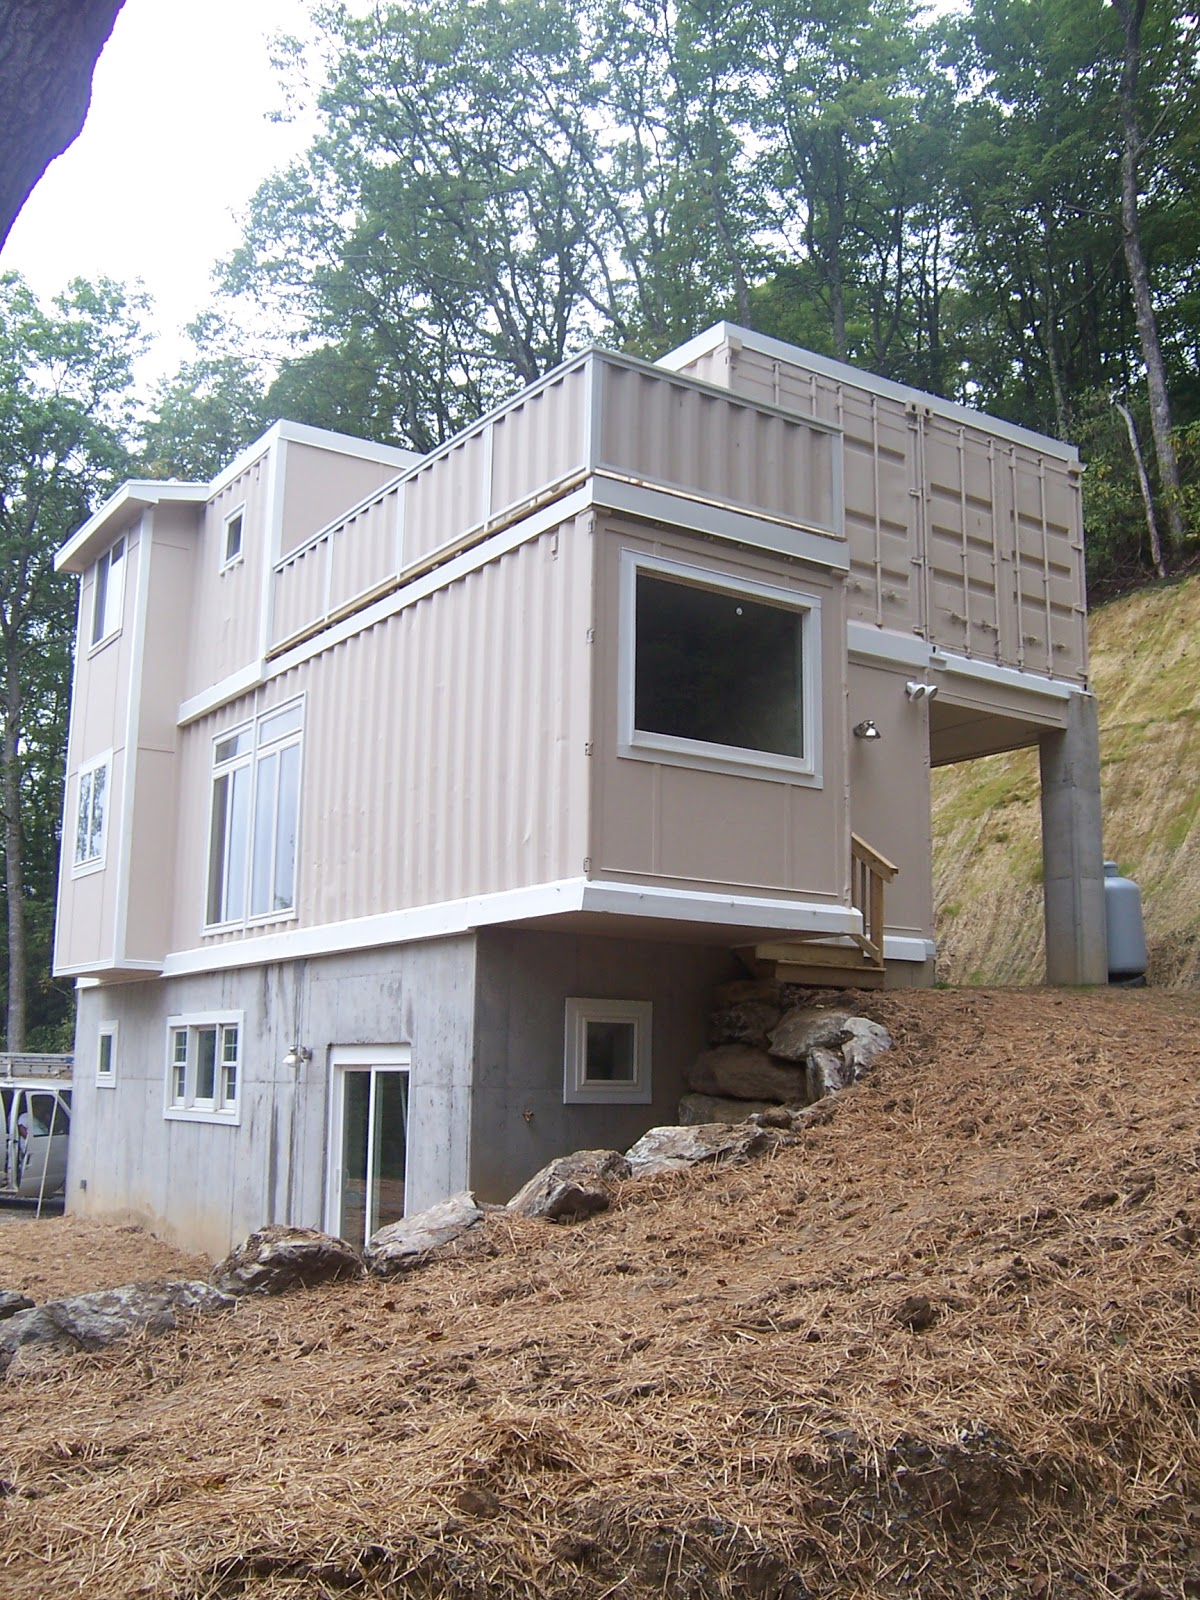 Shipping container homes high country green boxes dwellbox boone north carolina 5 - Cost to build shipping container home ...